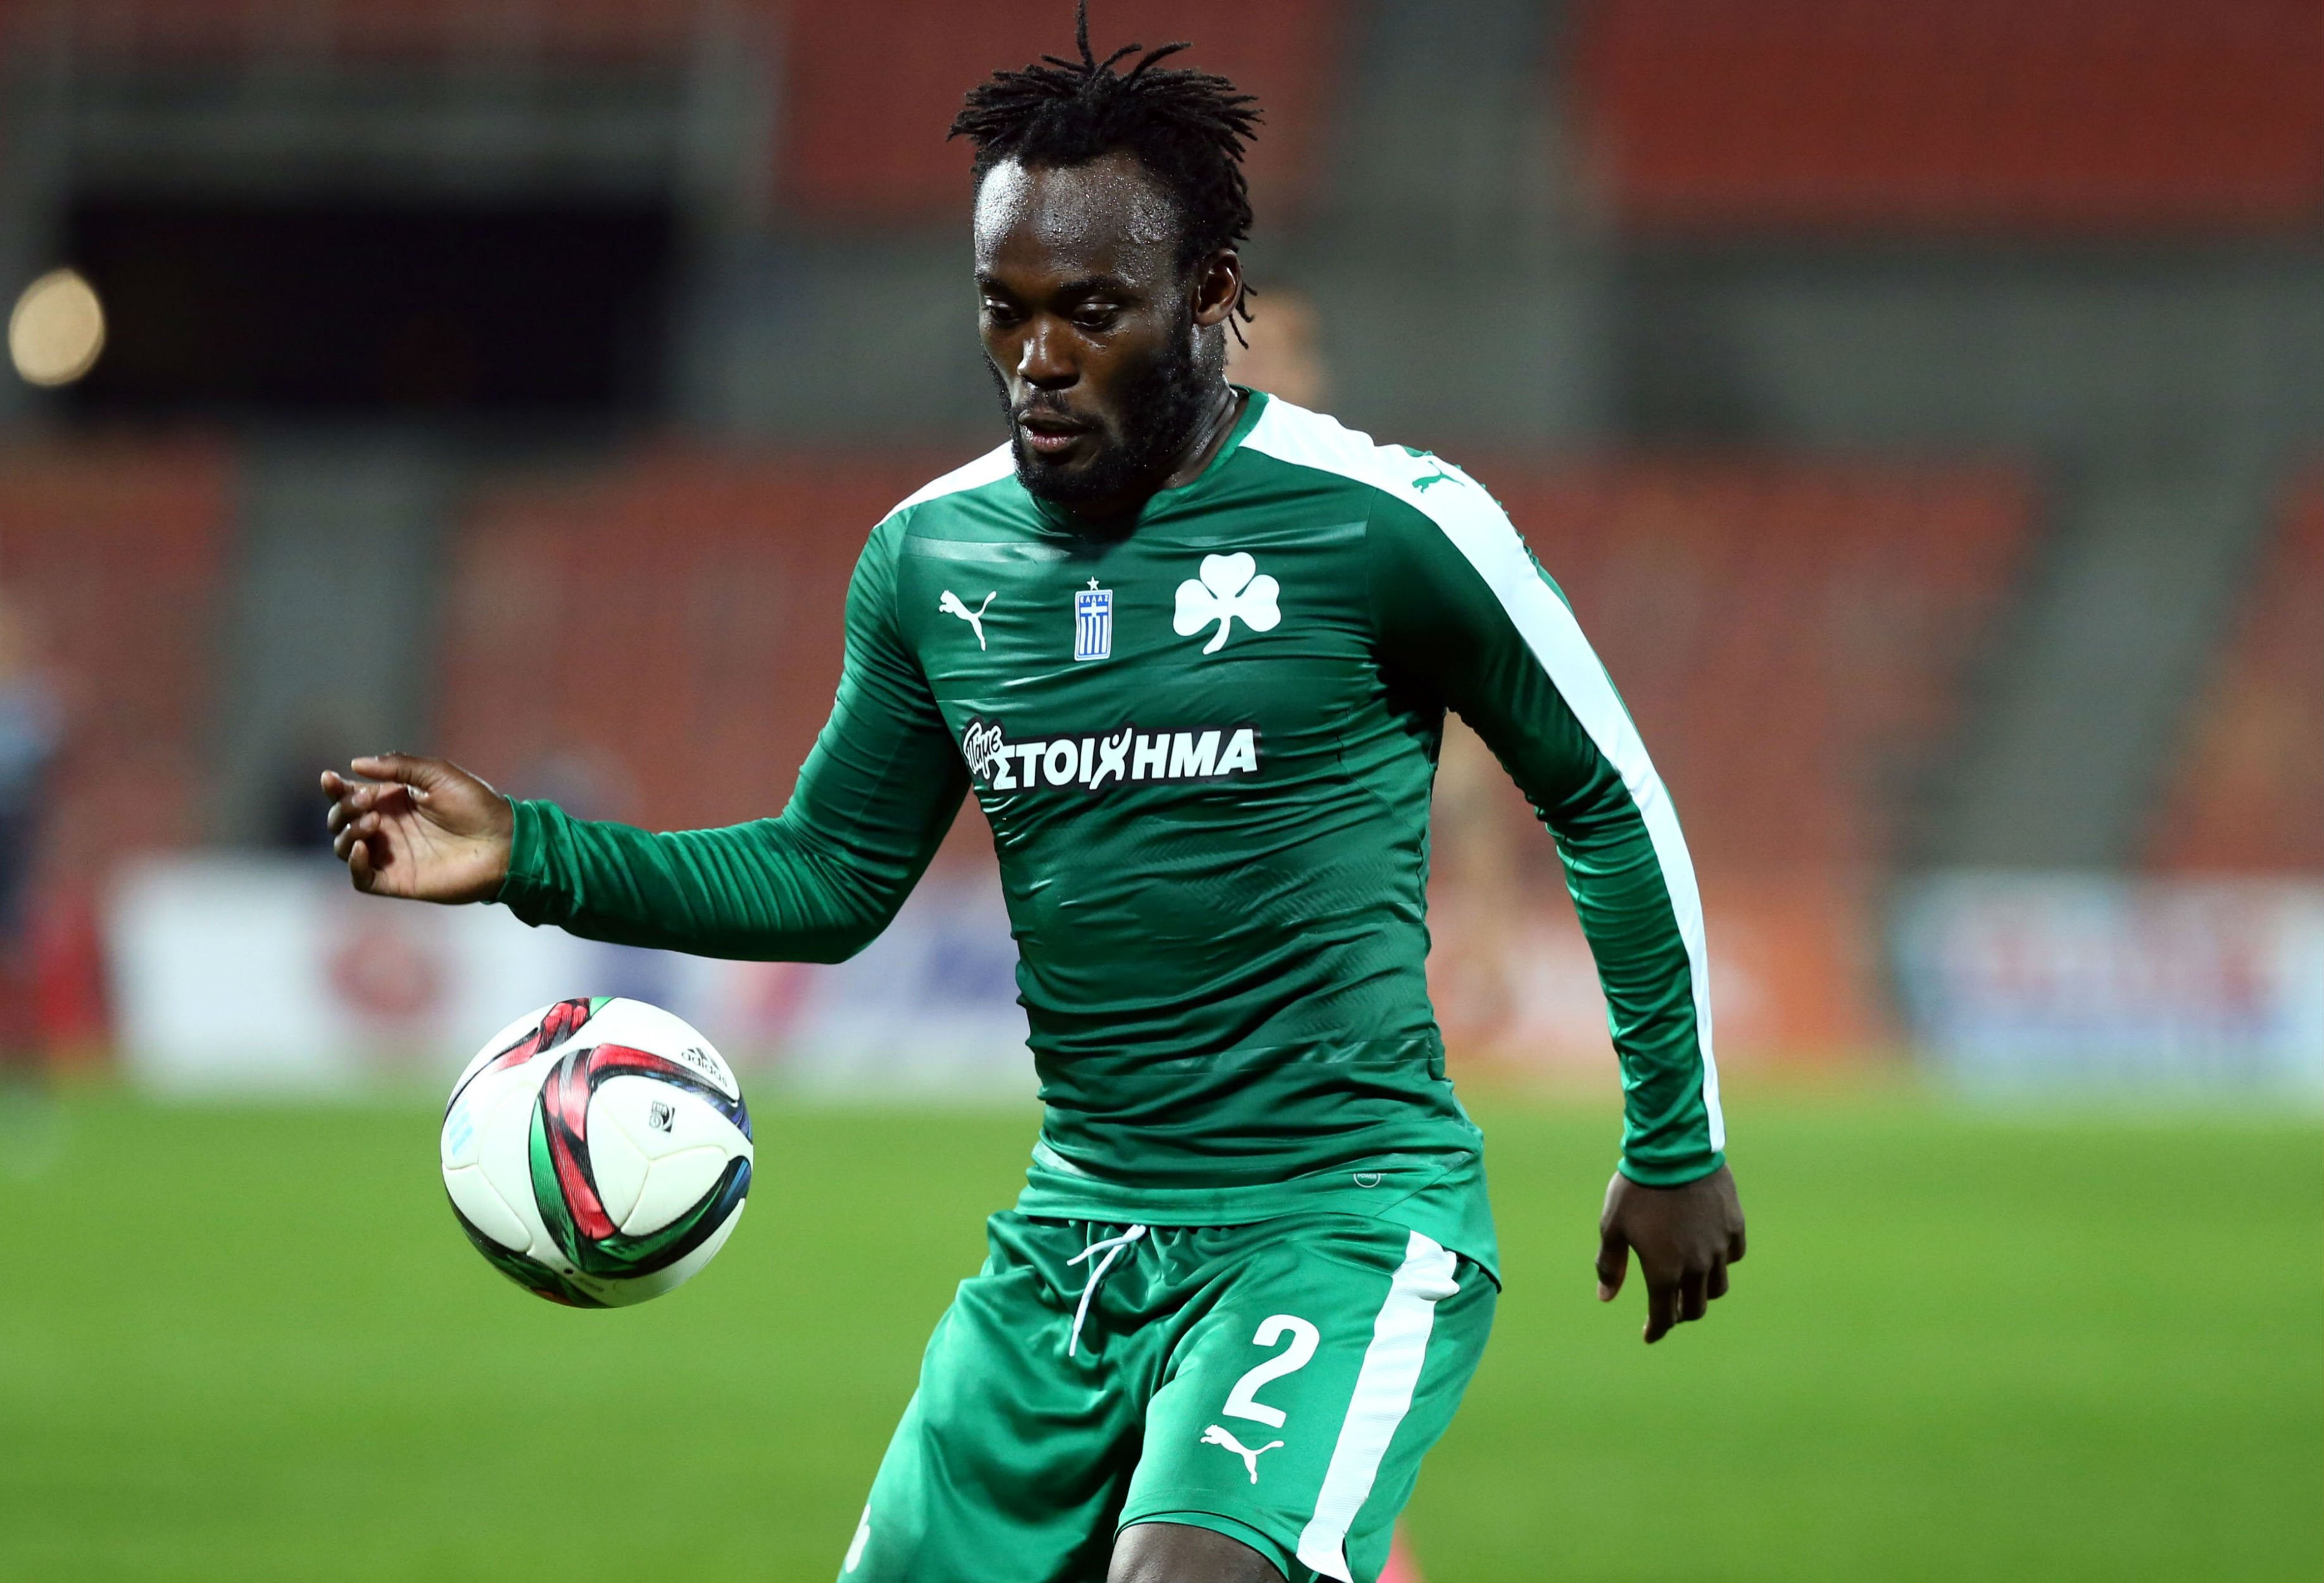 Panathinaikos coach says Michael Essien needs more time to be fully fit after making long-awaited debut